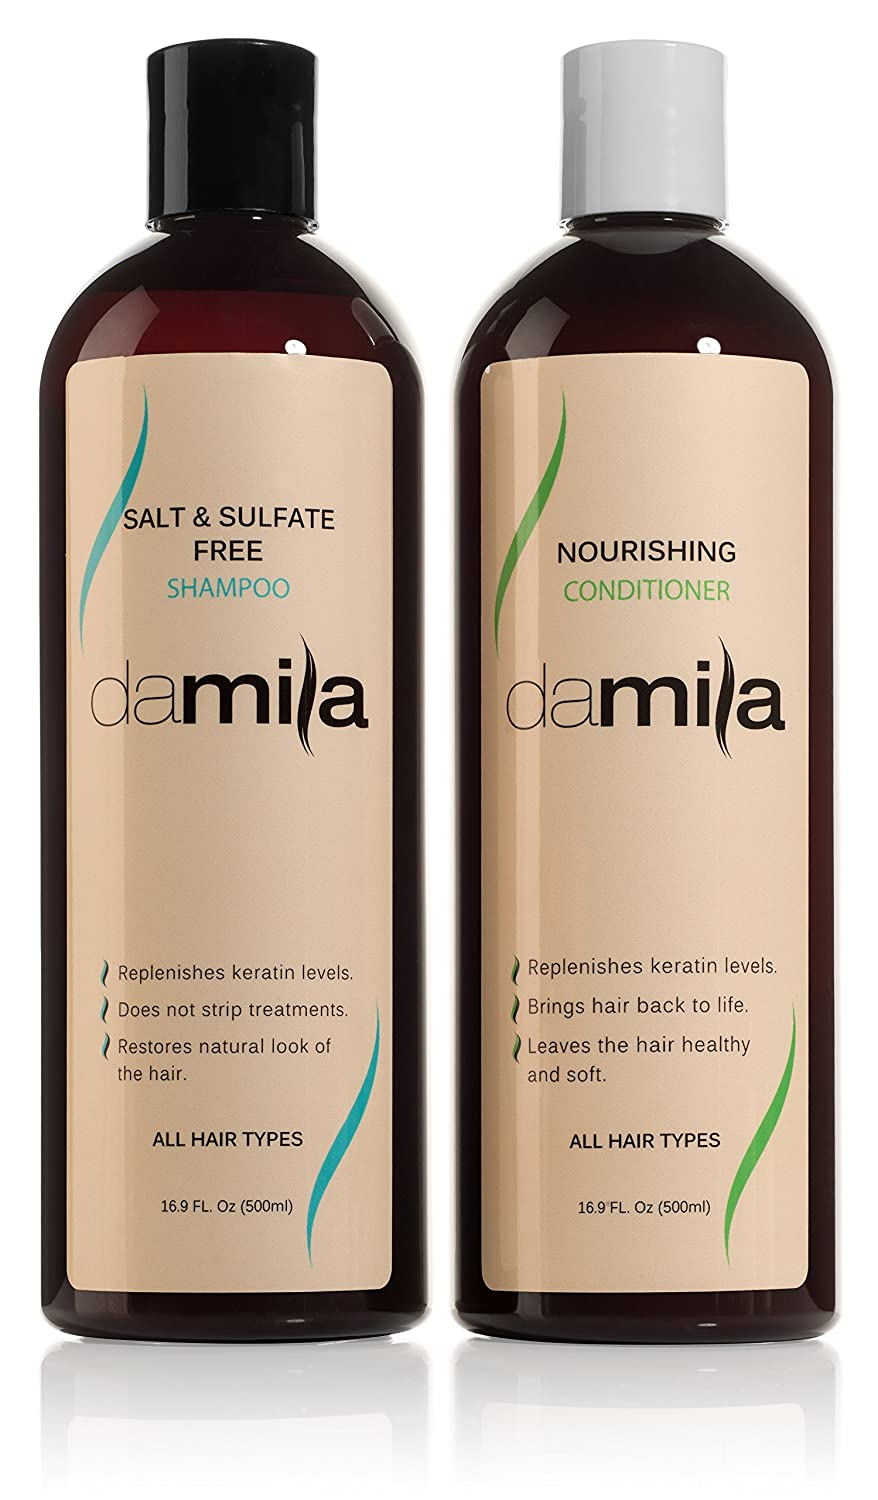 Salt & Sulfate Free Shampoo and Nourishing Conditioner - Keratin Complex